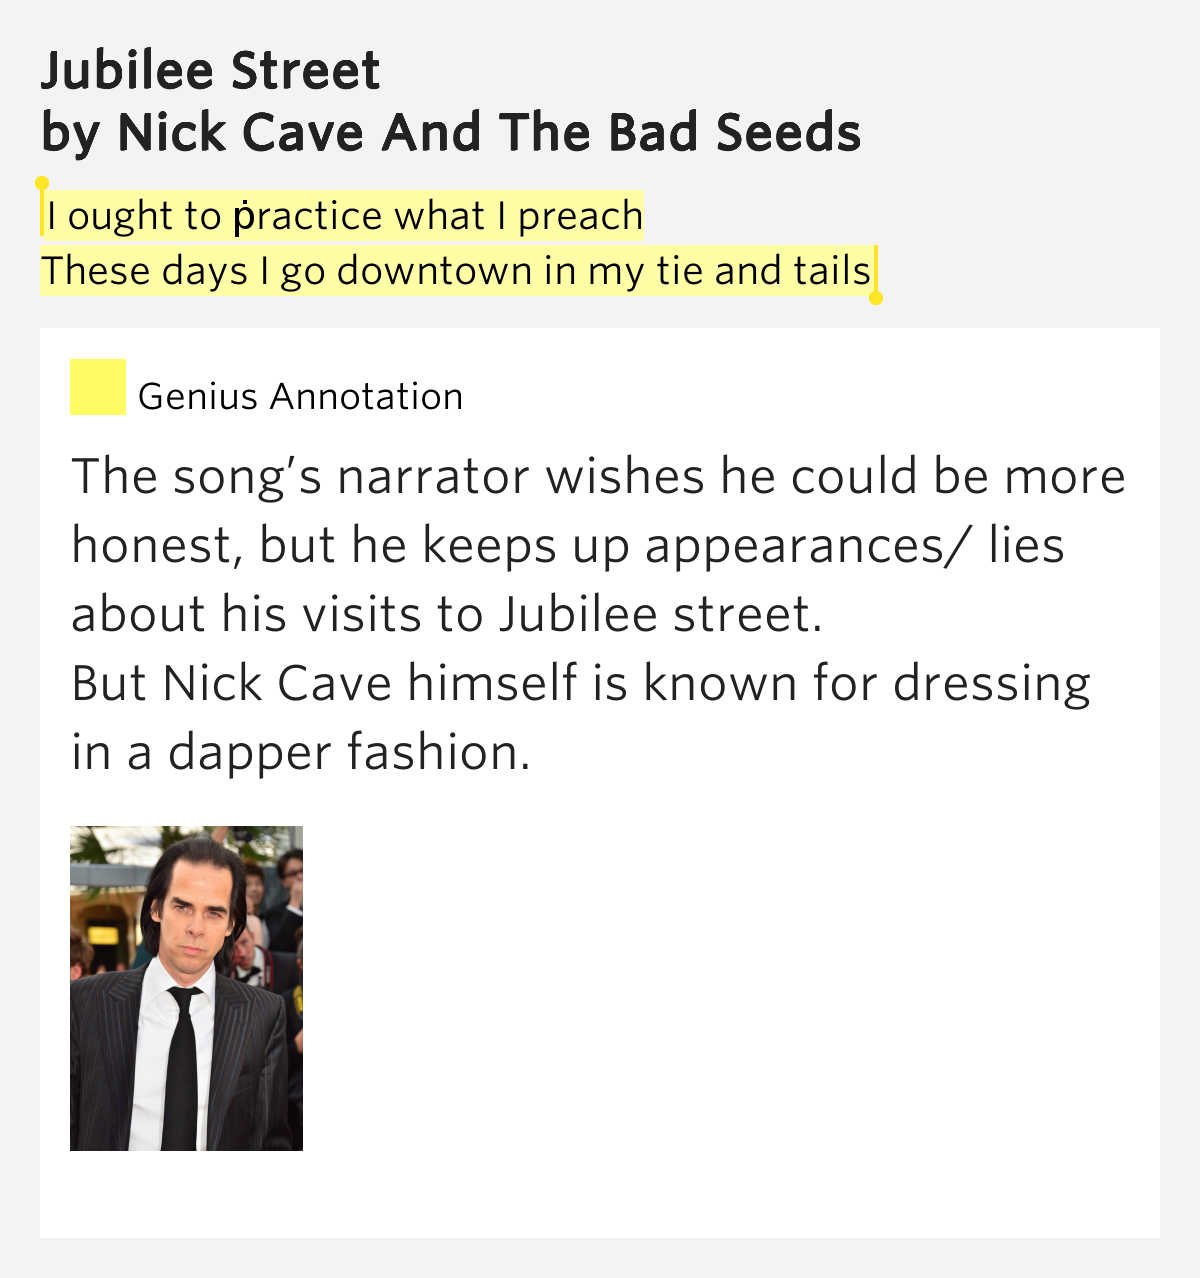 Nick Cave and the Bad Seeds- Jubilee Street - YouTube